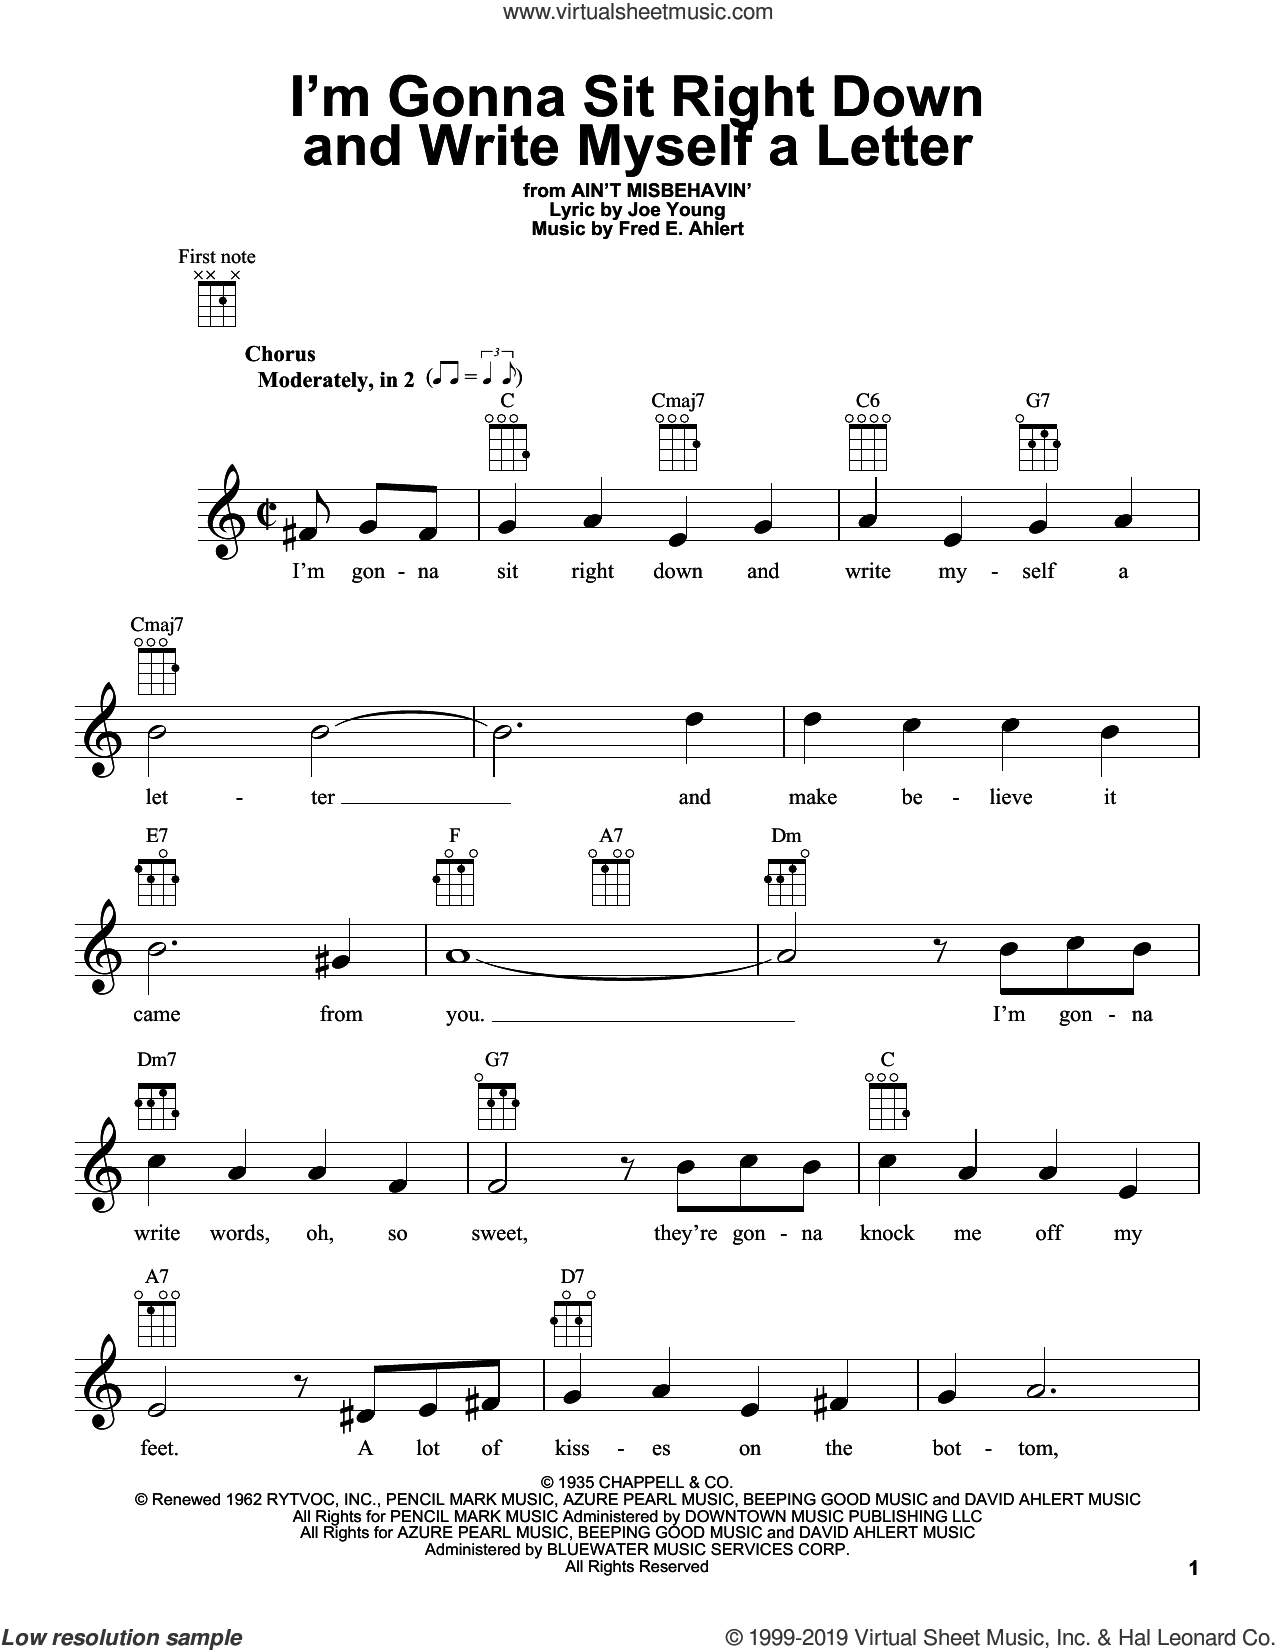 I'm Gonna Sit Right Down And Write Myself A Letter sheet music for ukulele by Joe Young, Billy Williams, Willie Nelson and Fred Ahlert, intermediate skill level